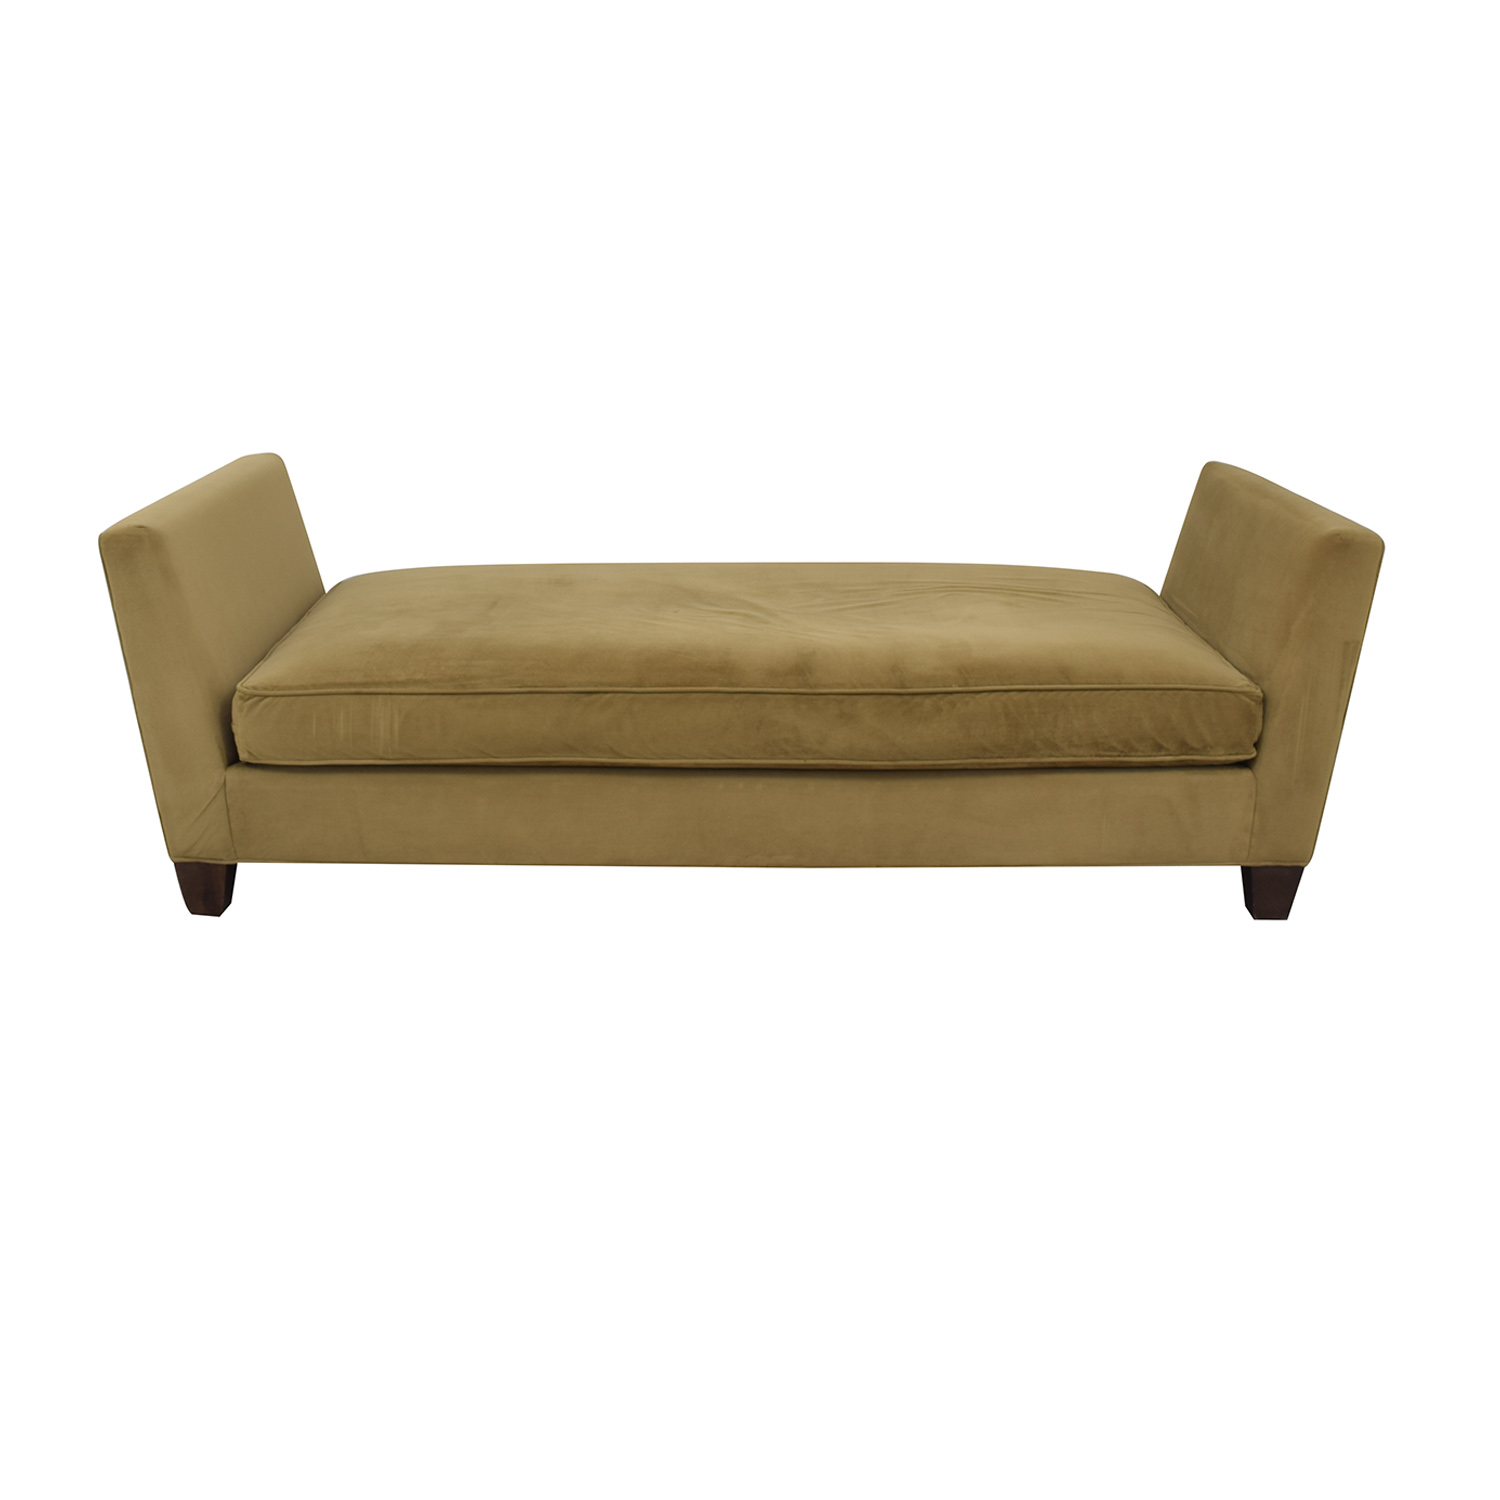 buy Crate & Barrel Simone Daybed Crate & Barrel